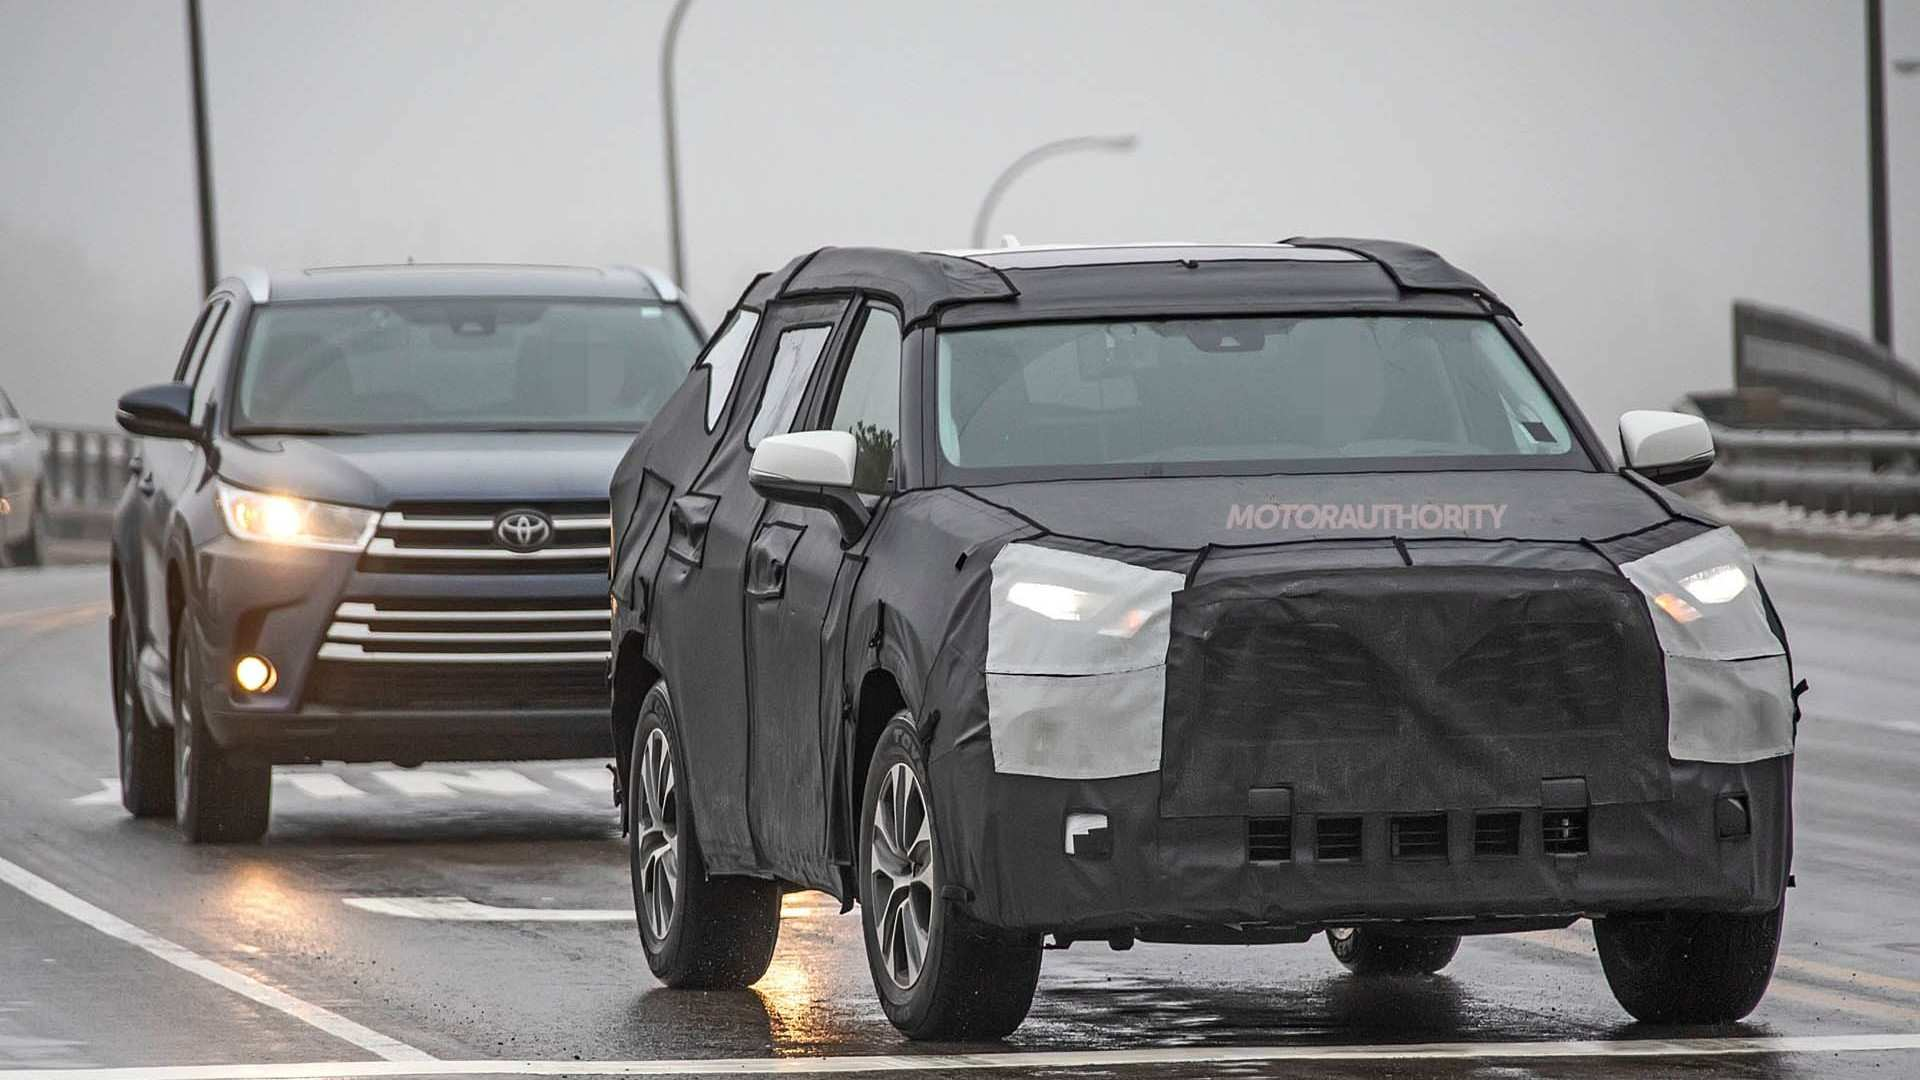 21 Great Toyota Highlander 2020 Redesign Pictures by Toyota Highlander 2020 Redesign